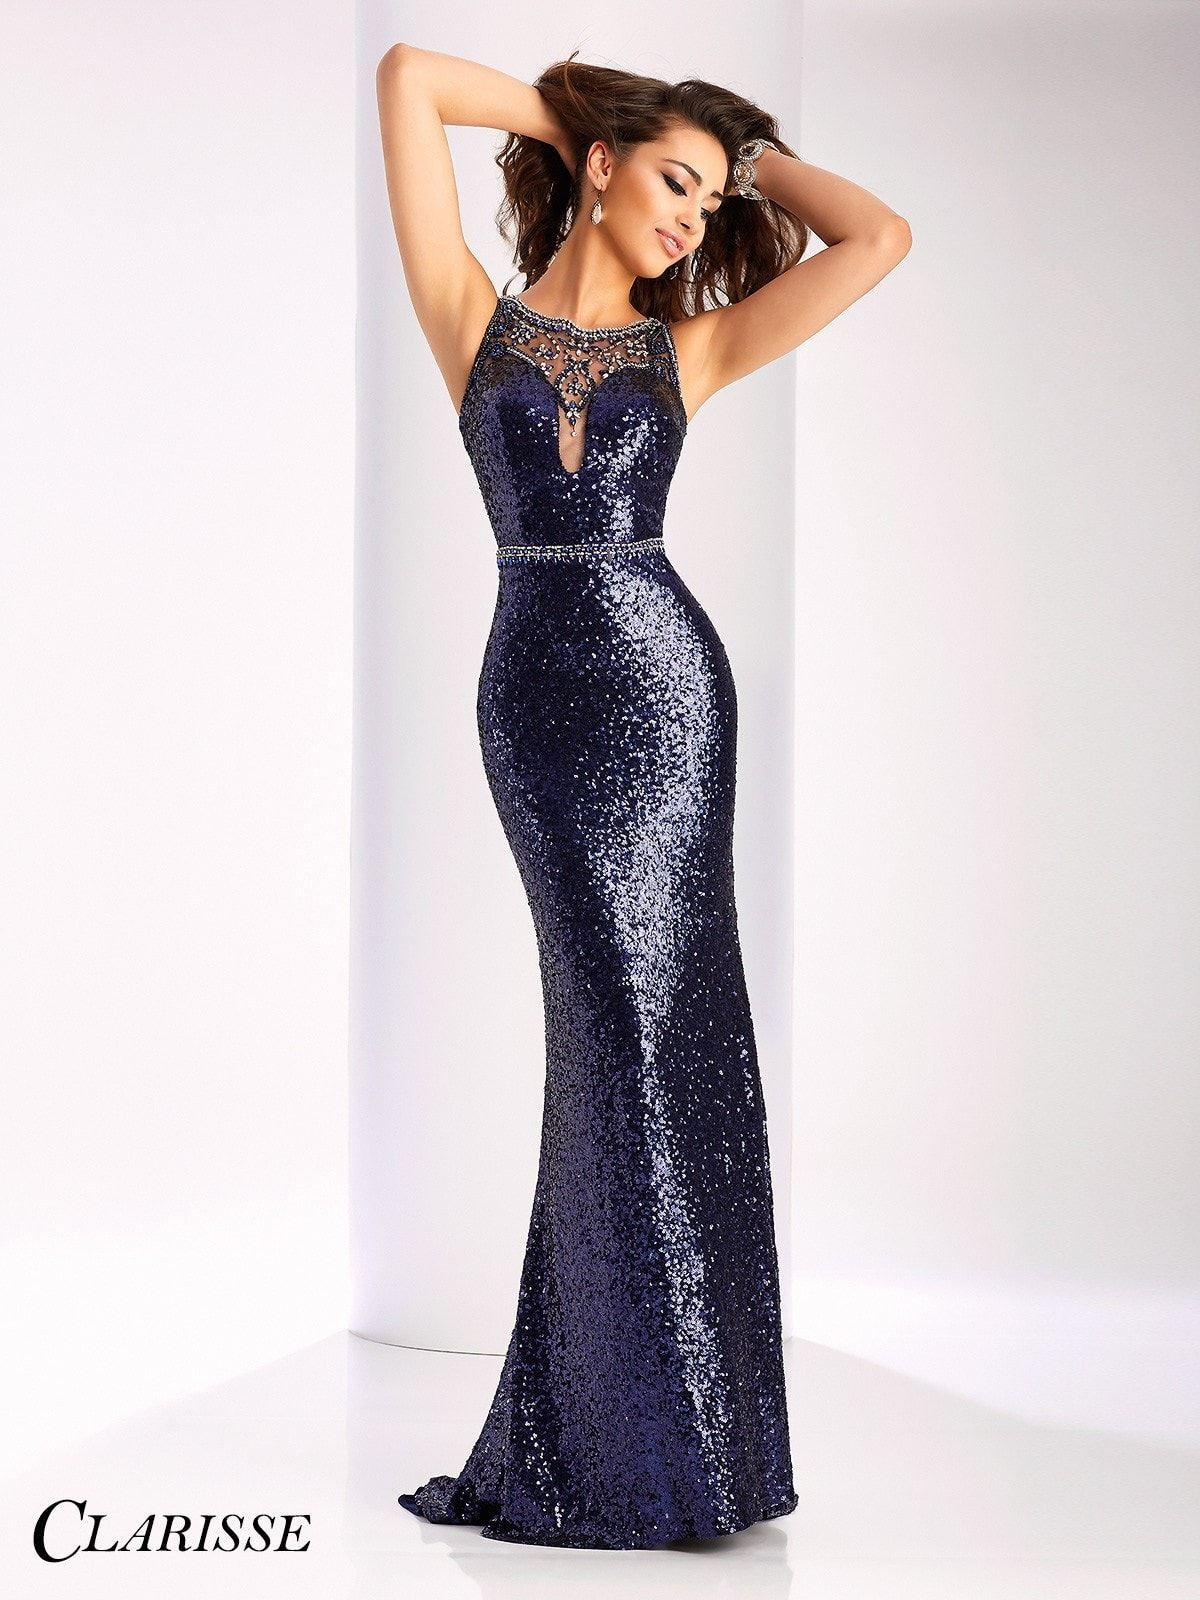 Clarisse prom navy high neckline prom dress navy colour